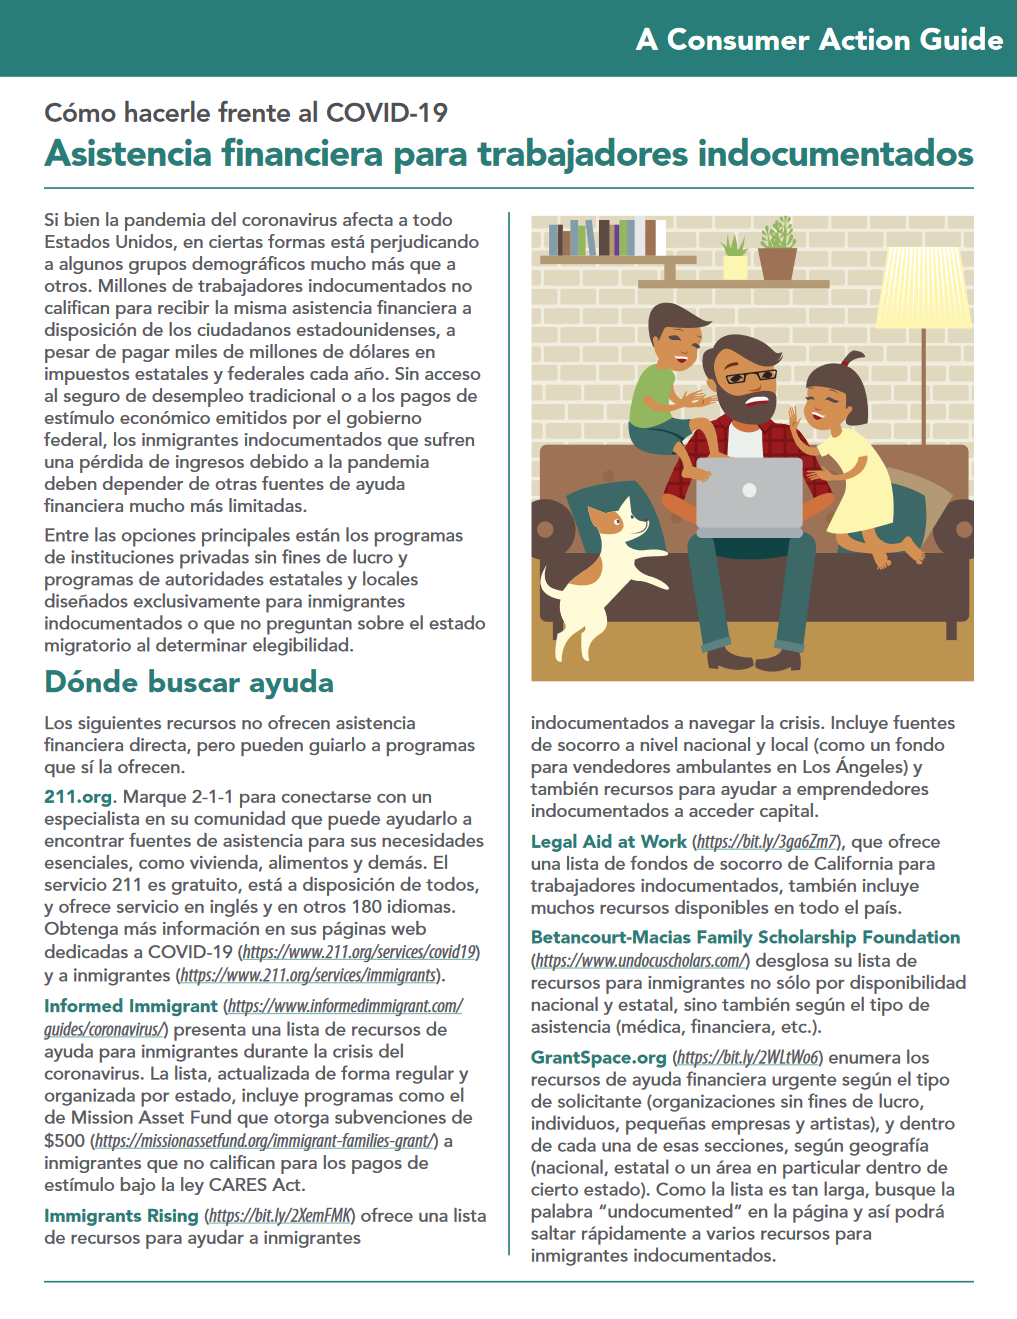 Financial assistance for undocumented workers (Spanish)